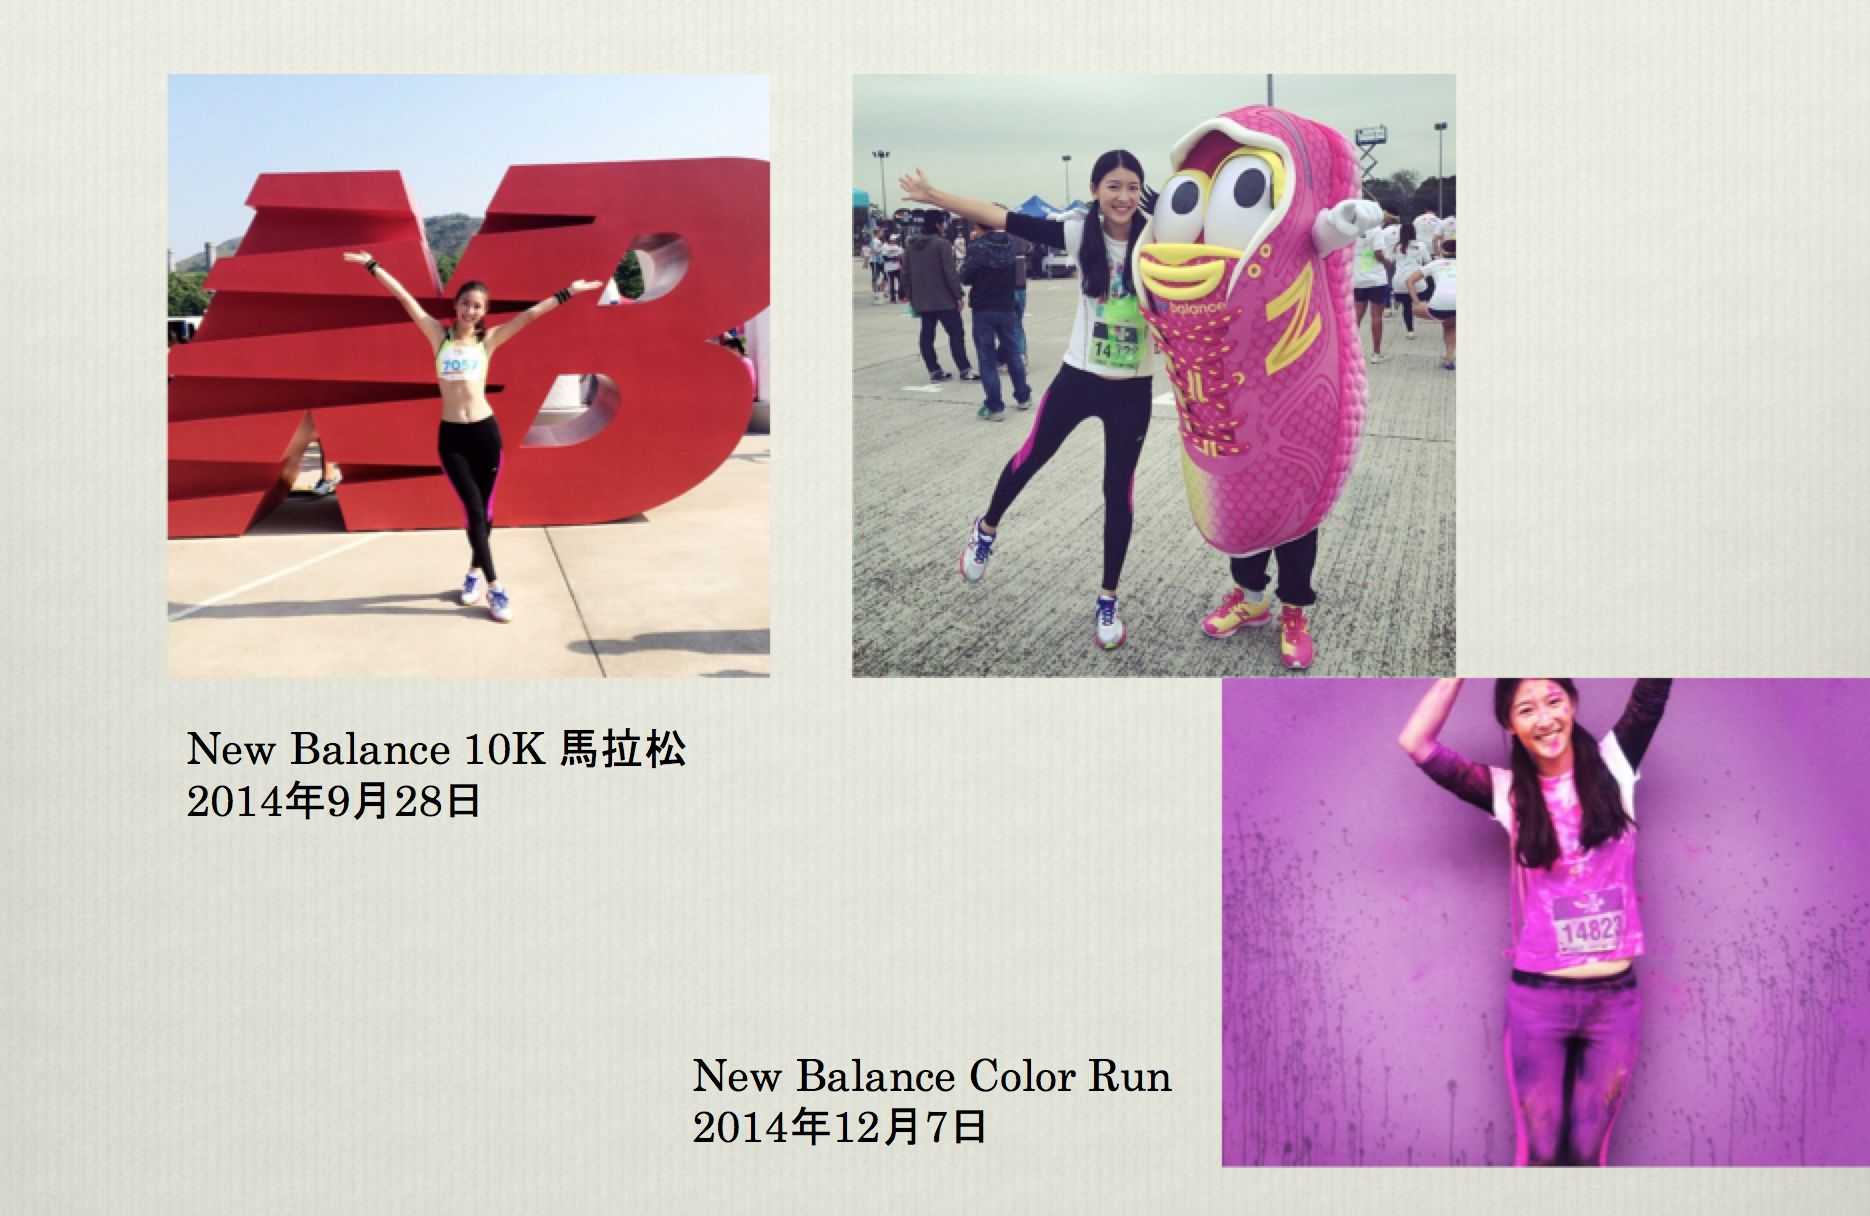 New Balance 10K & Color Run